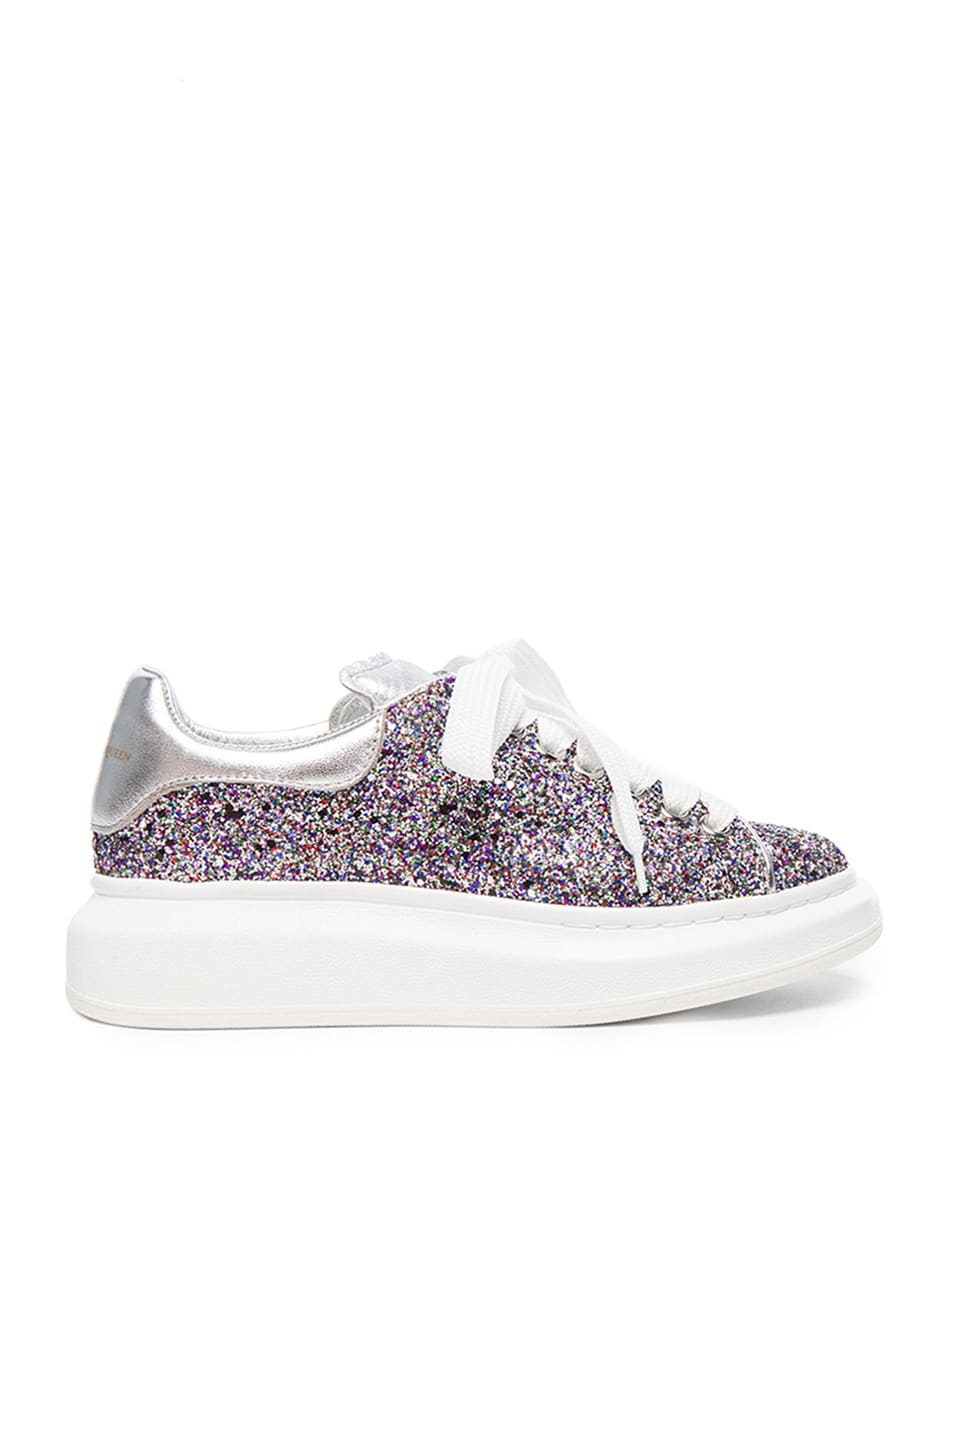 0ae37ce8845c Image 1 of Alexander McQueen Glitter Sneakers in Multi